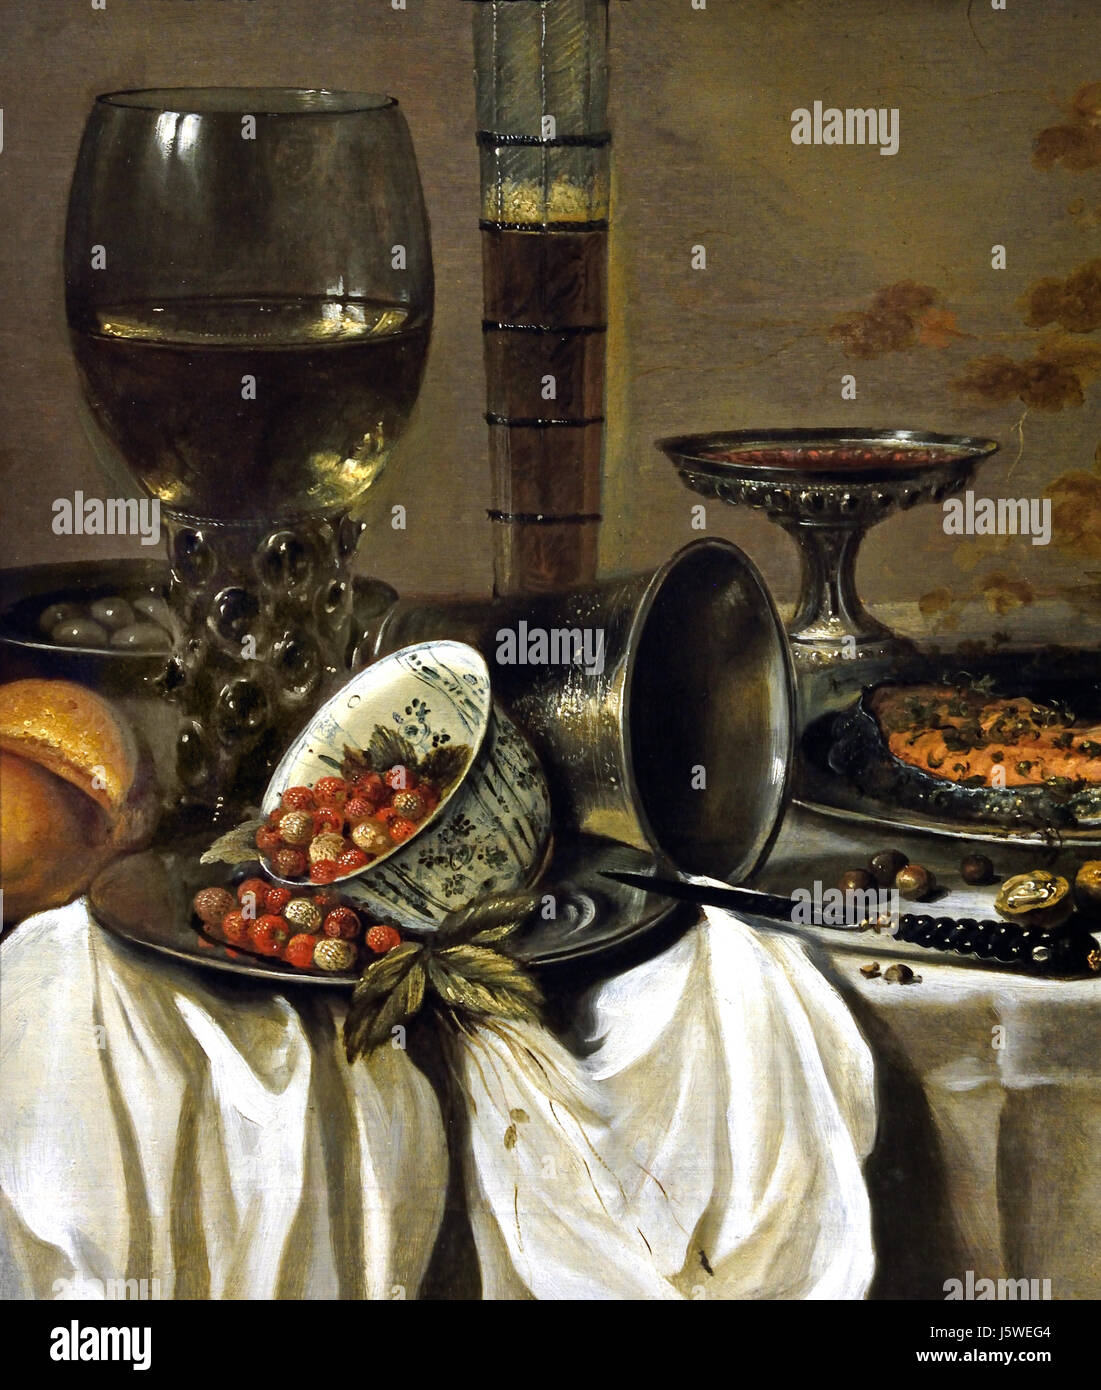 Still Life with Drinking Vessels 1649 Pieter Claesz 1597/8 - 1660 Dutch The Netherlands - Stock Image